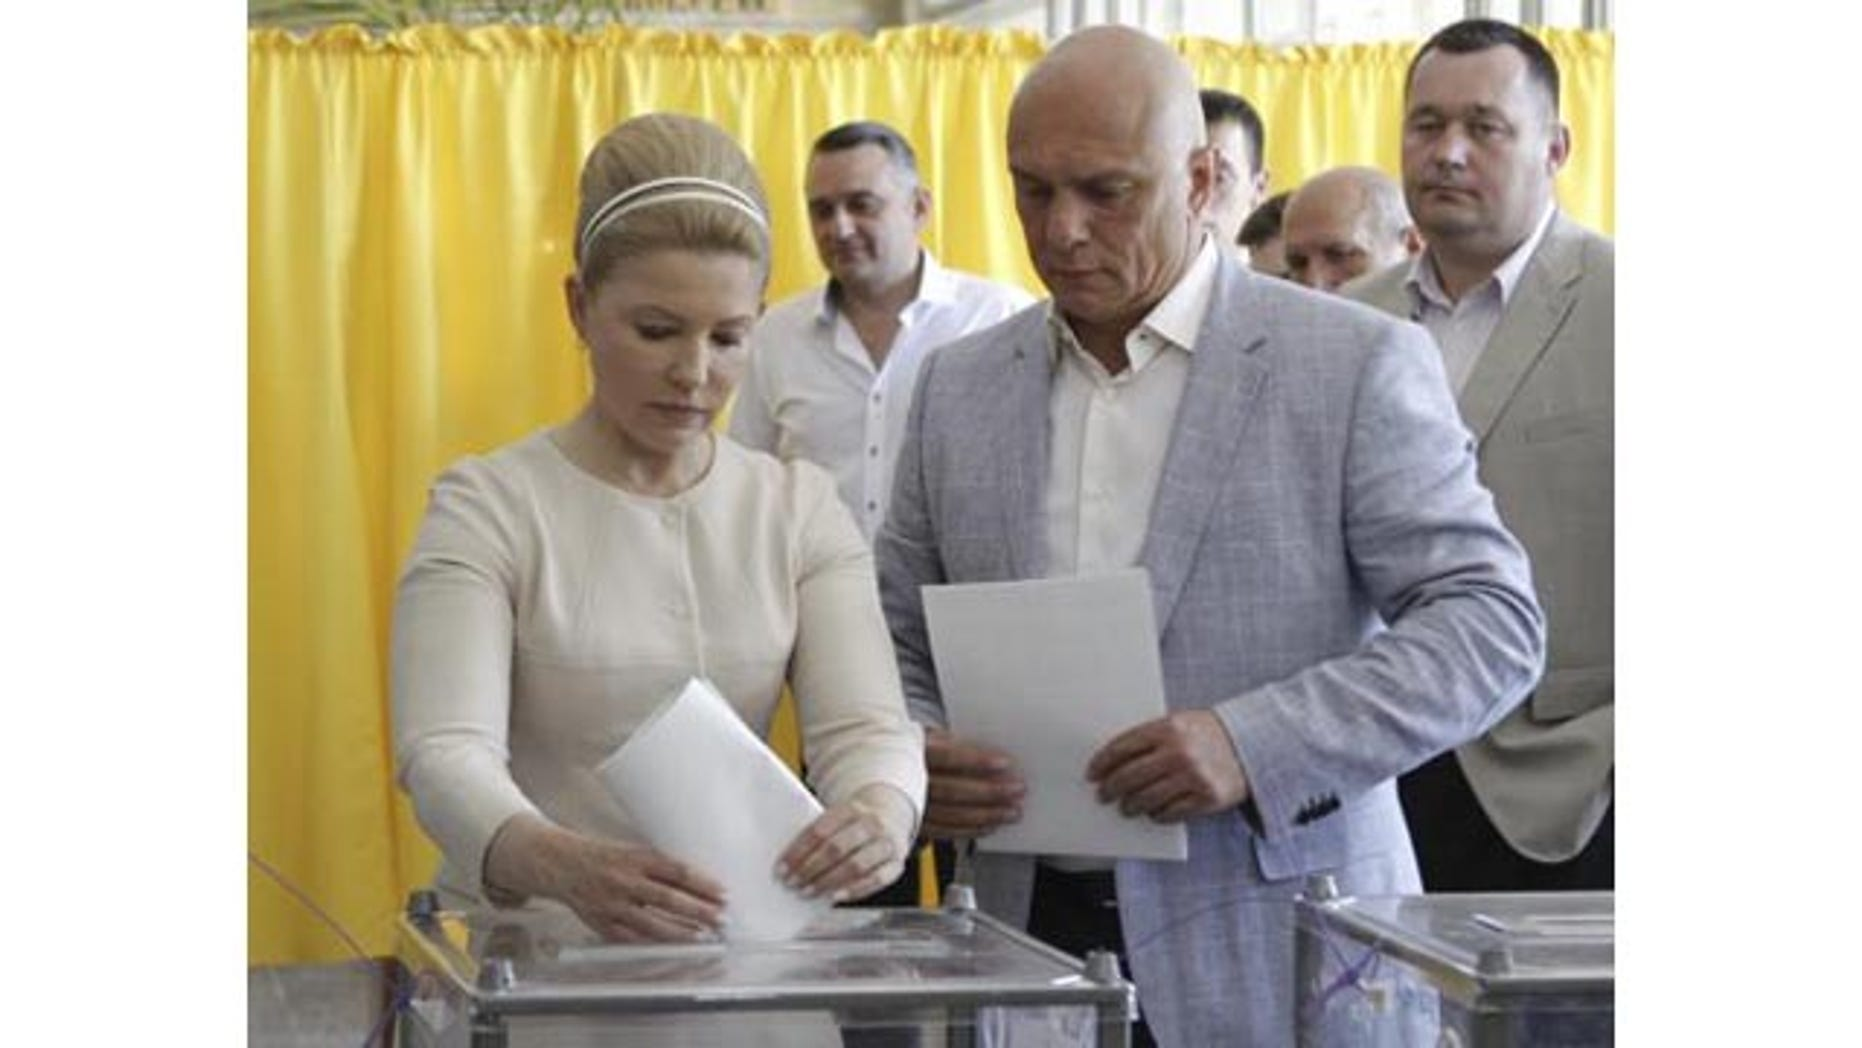 May 25, 2014: Former prime minister and Presidential candidate Yulia Tymoshenko (L), accompanied by her husband Oleksander (R), casts her vote during a presidential election at a polling station in Dnipropetrovsk, Ukraine. (Reuters)